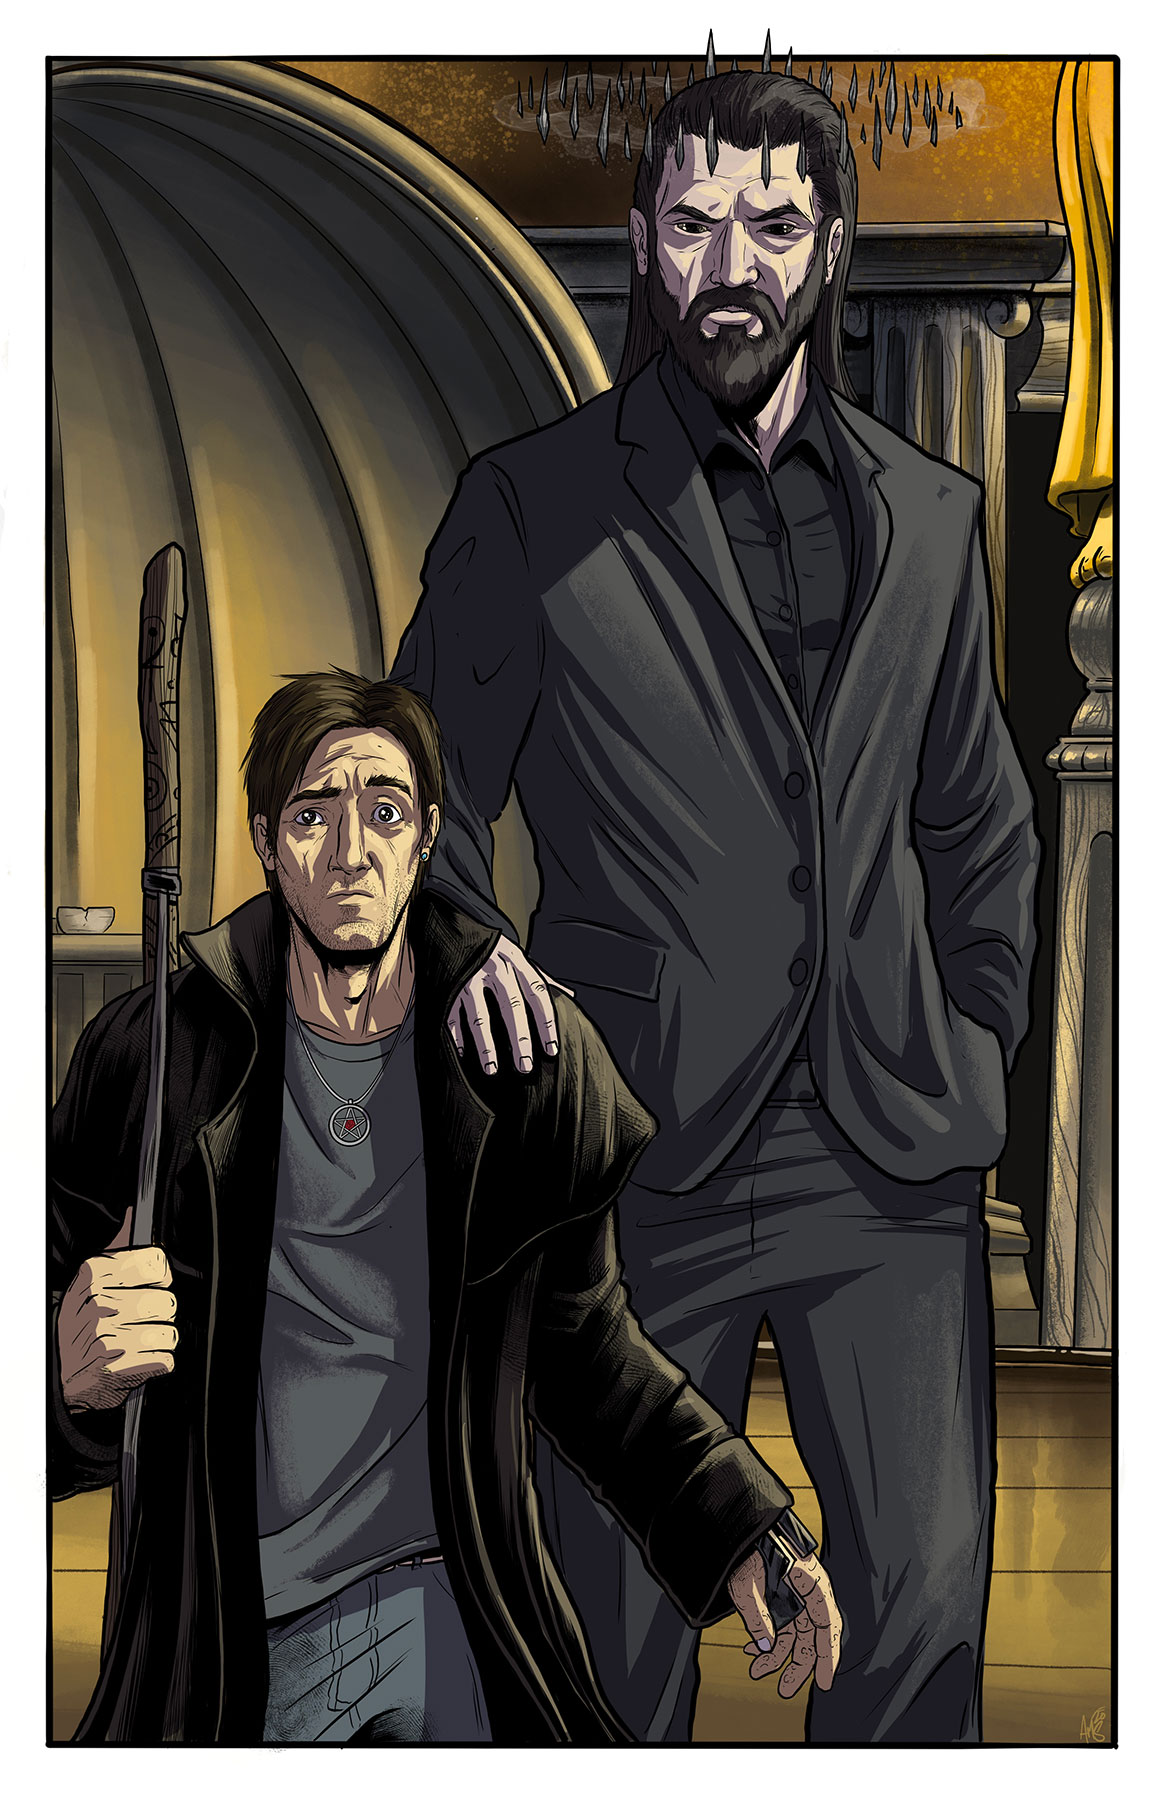 Harry and Hades by Adam Mathison-Sward